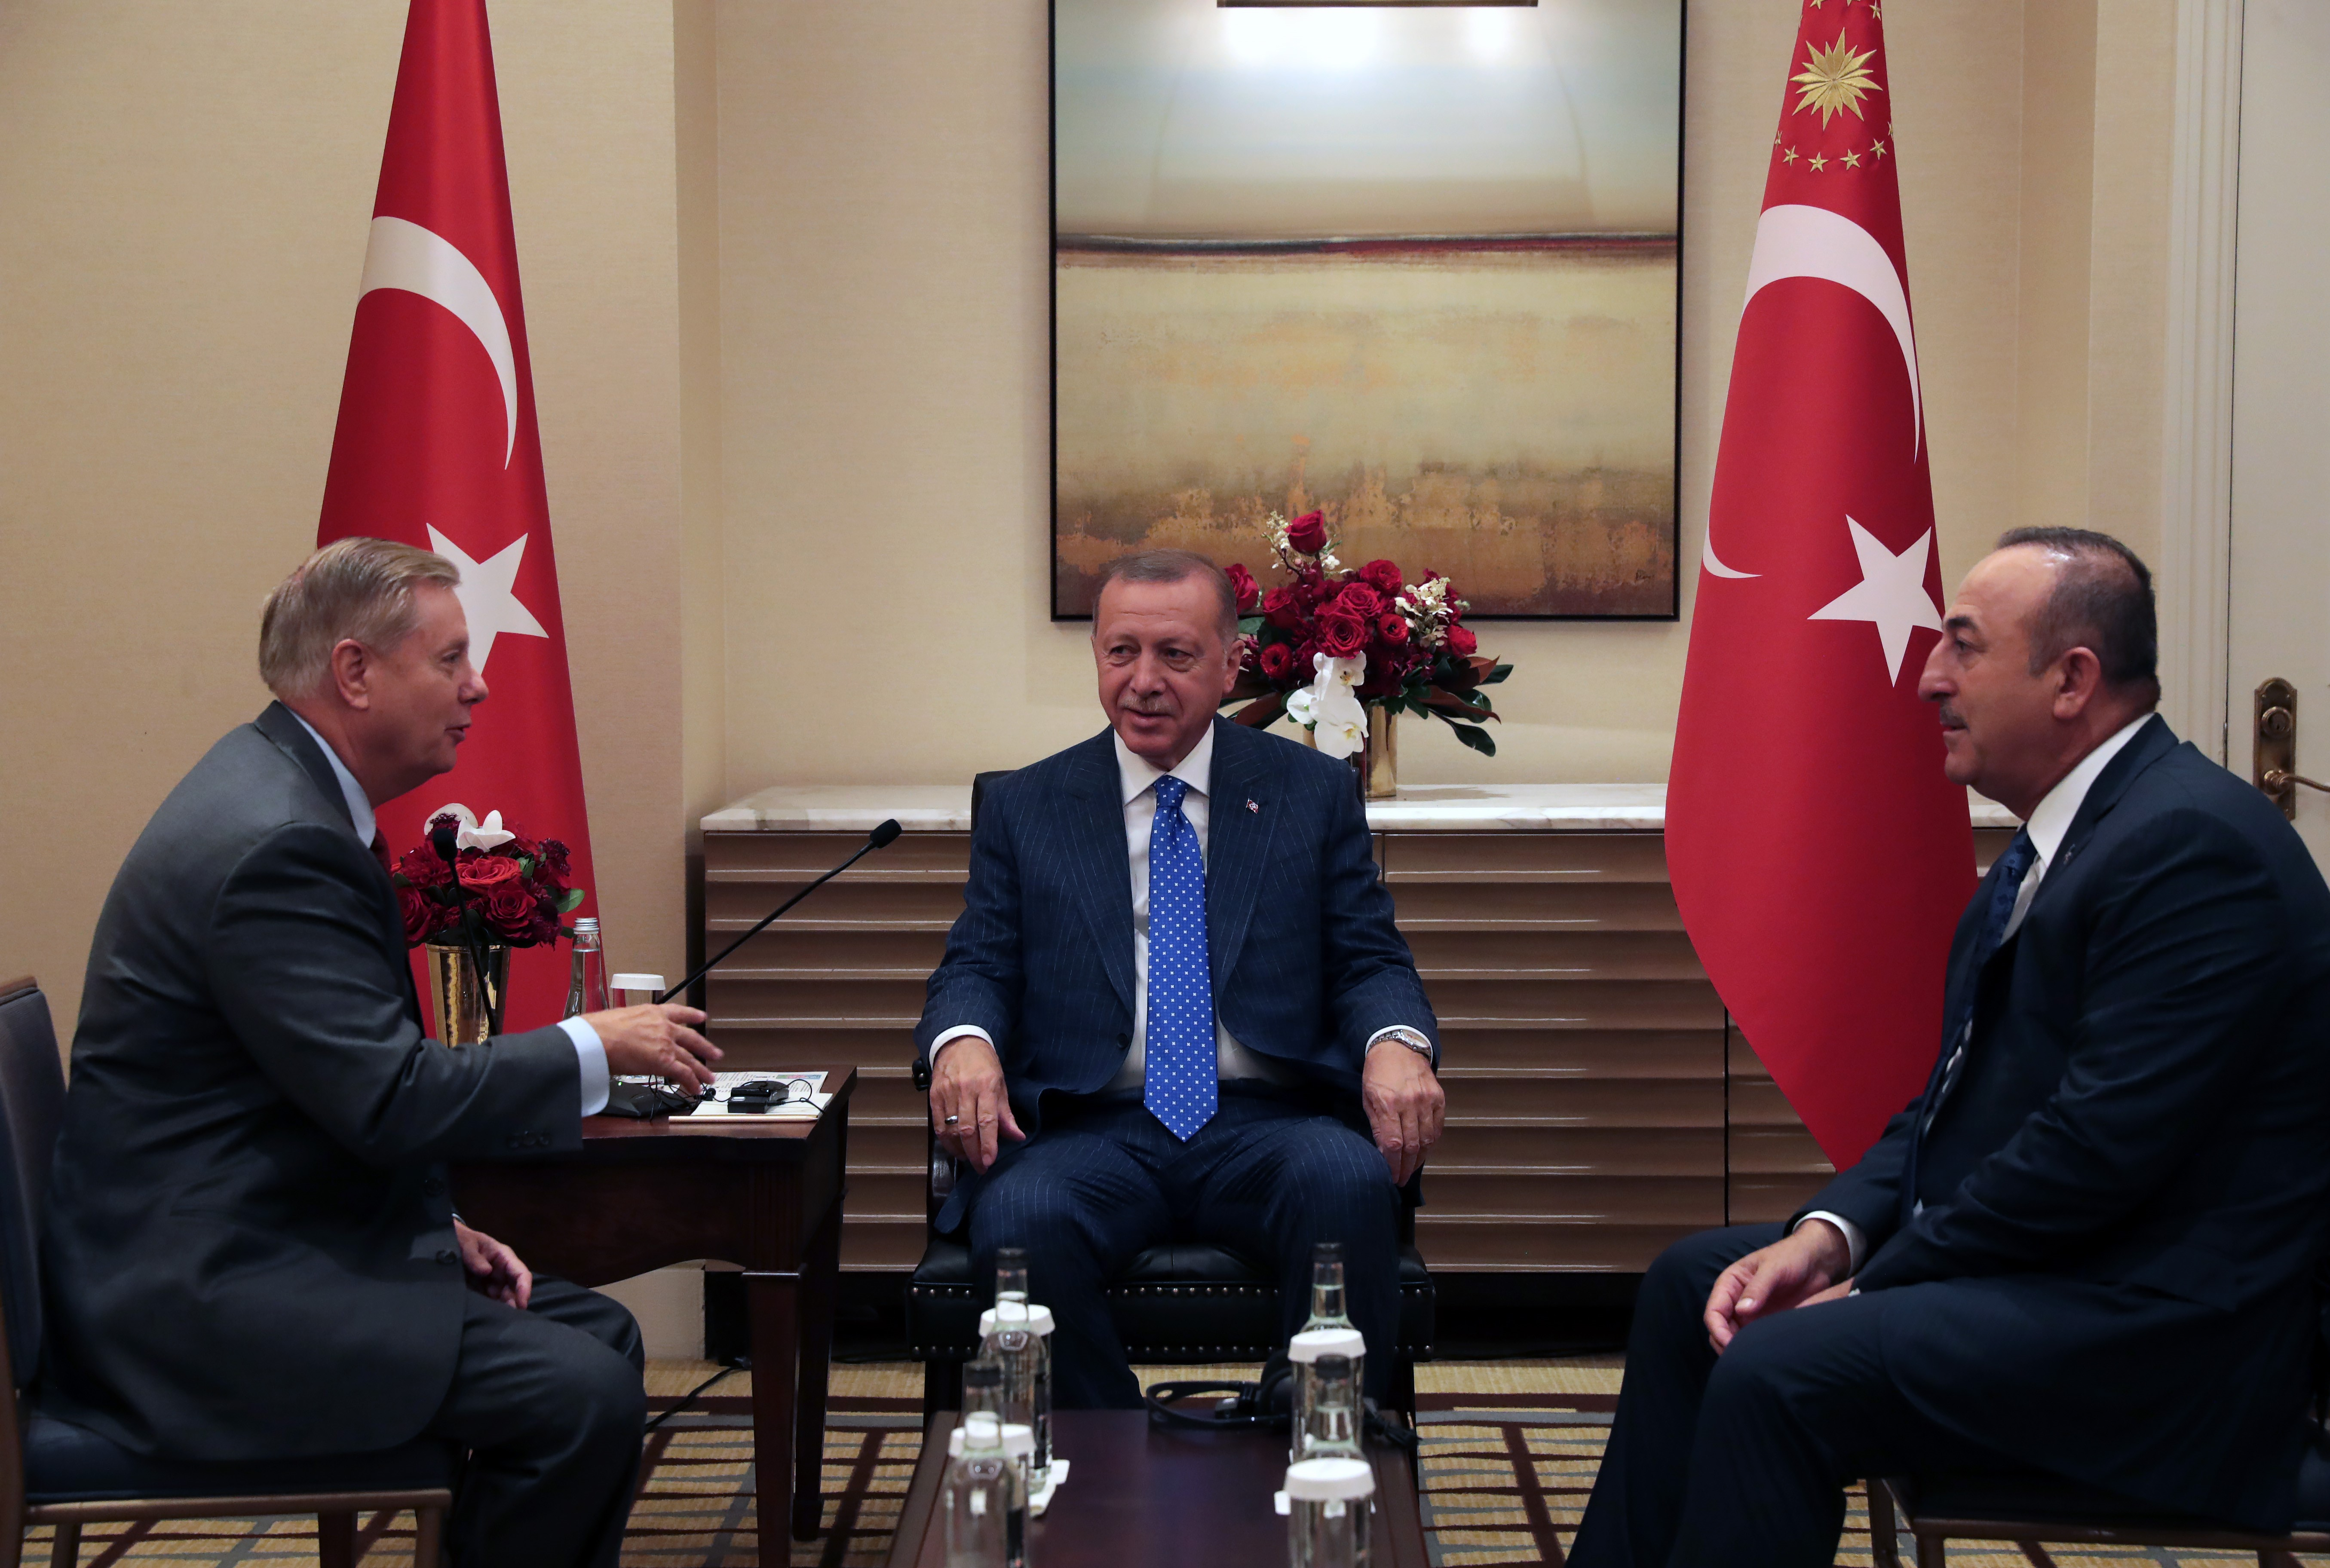 President of Turkey Erdogan in New York alongside Lindsey Graham, seated with Turkish flags behind them.